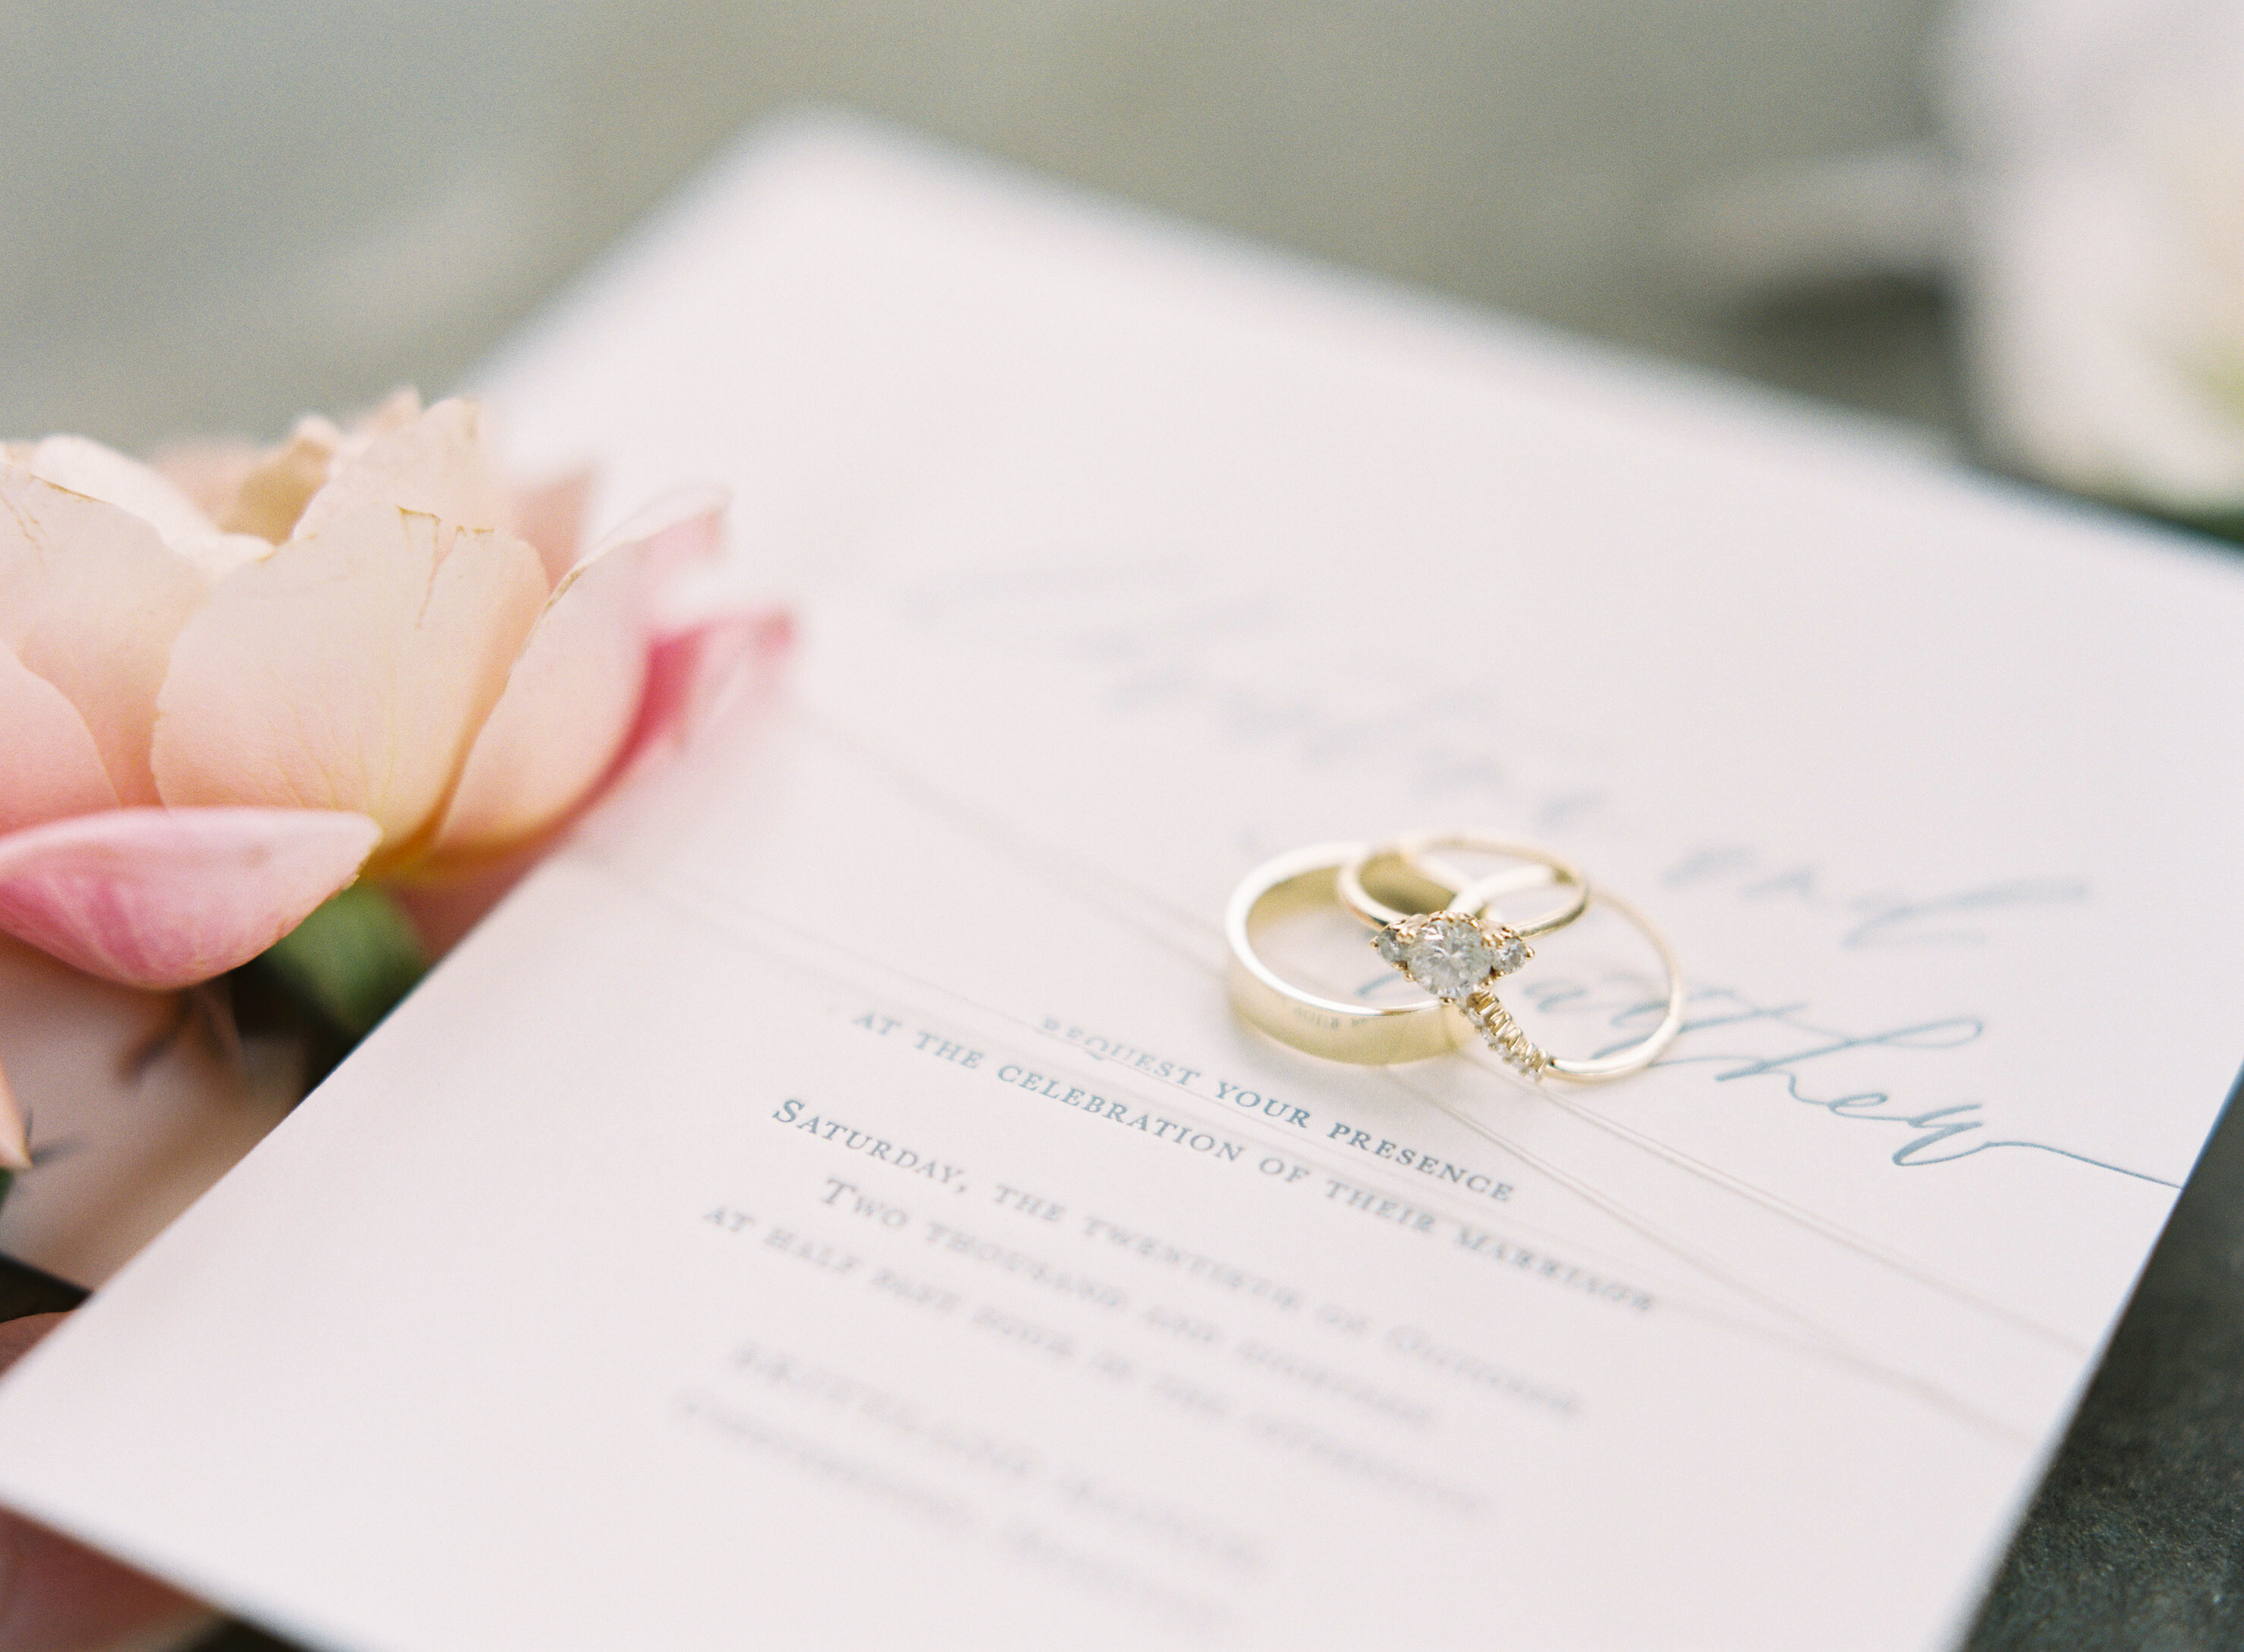 wedding bands diamond ring over invitation